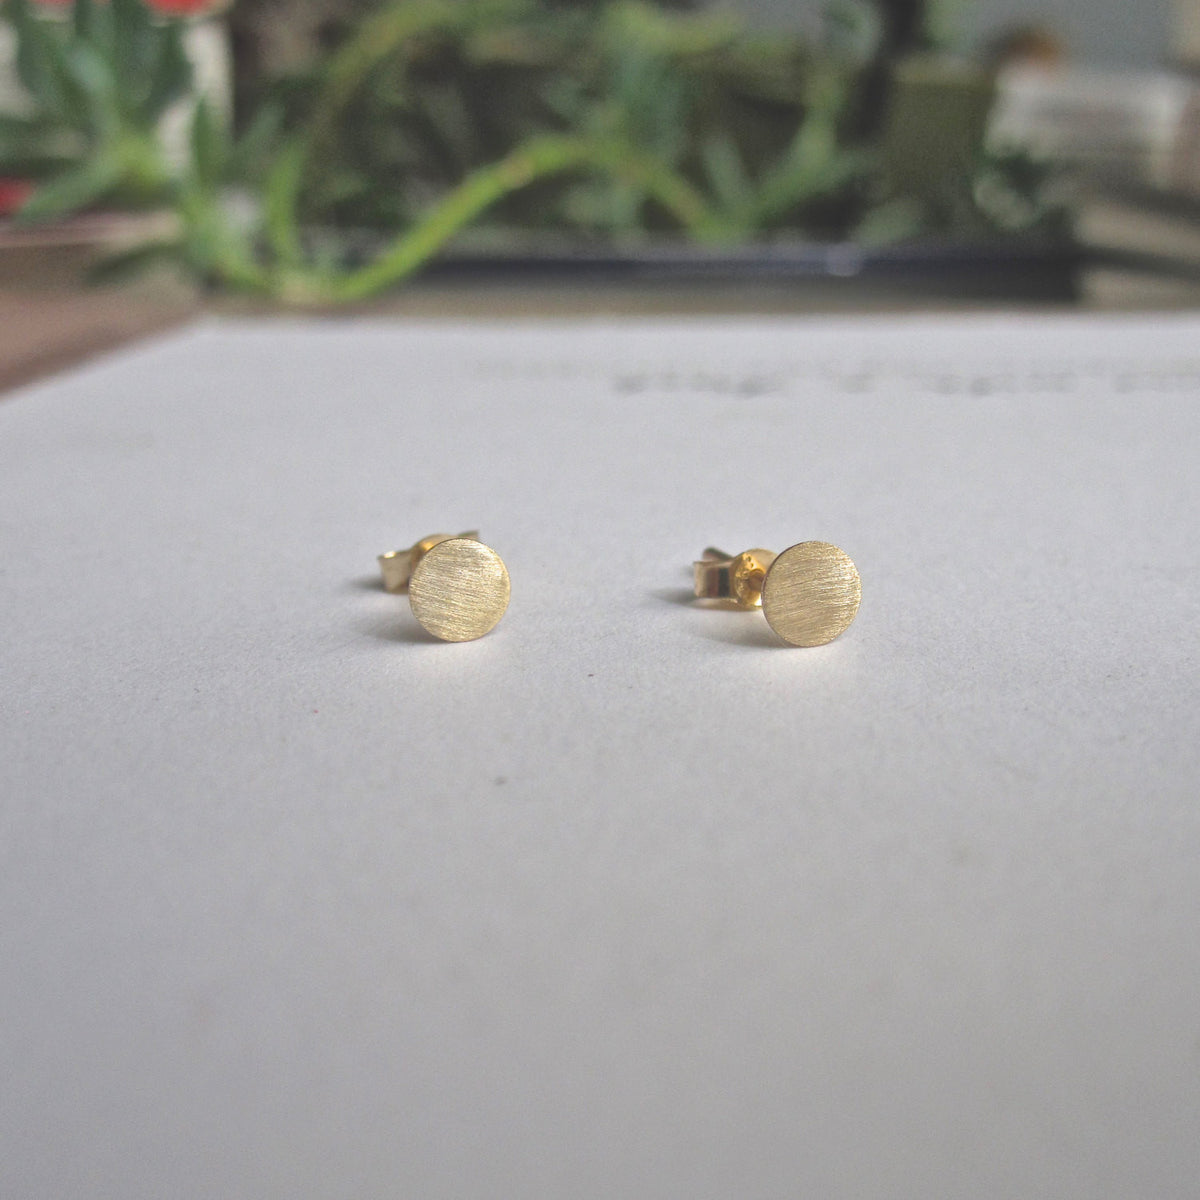 Tasteful and Classic - Hand-Made Solid 18k Gold Circle Studs - 0247 - Virginia Wynne Designs